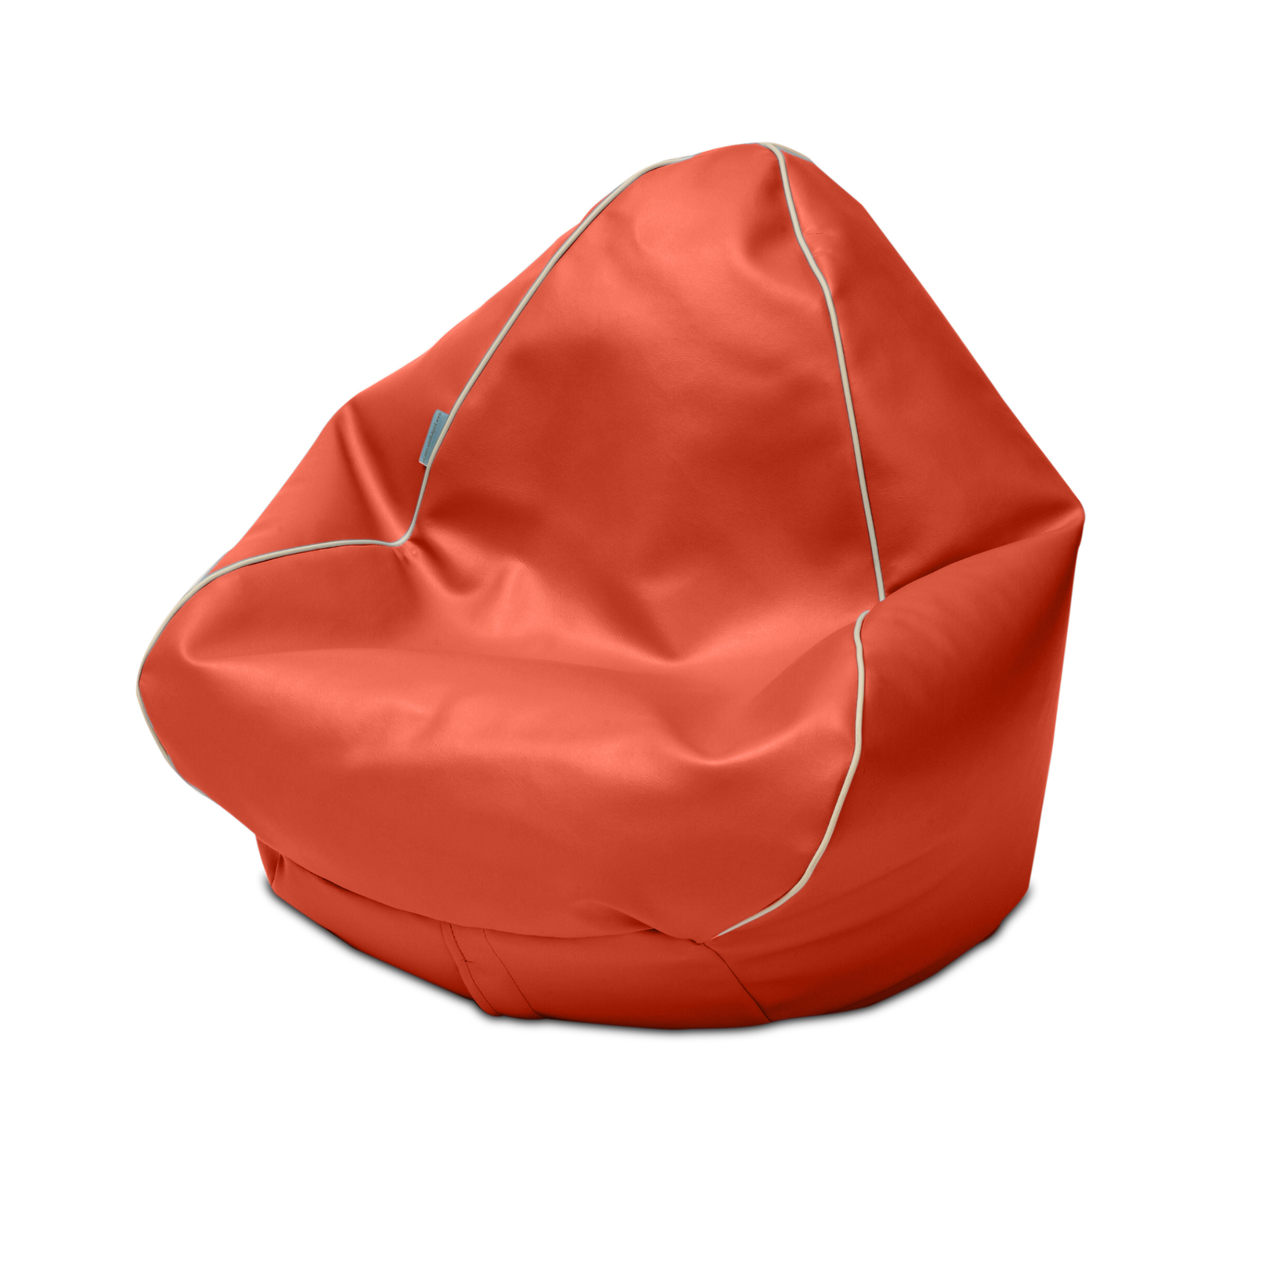 Retro Kids Bean Bag in paprika